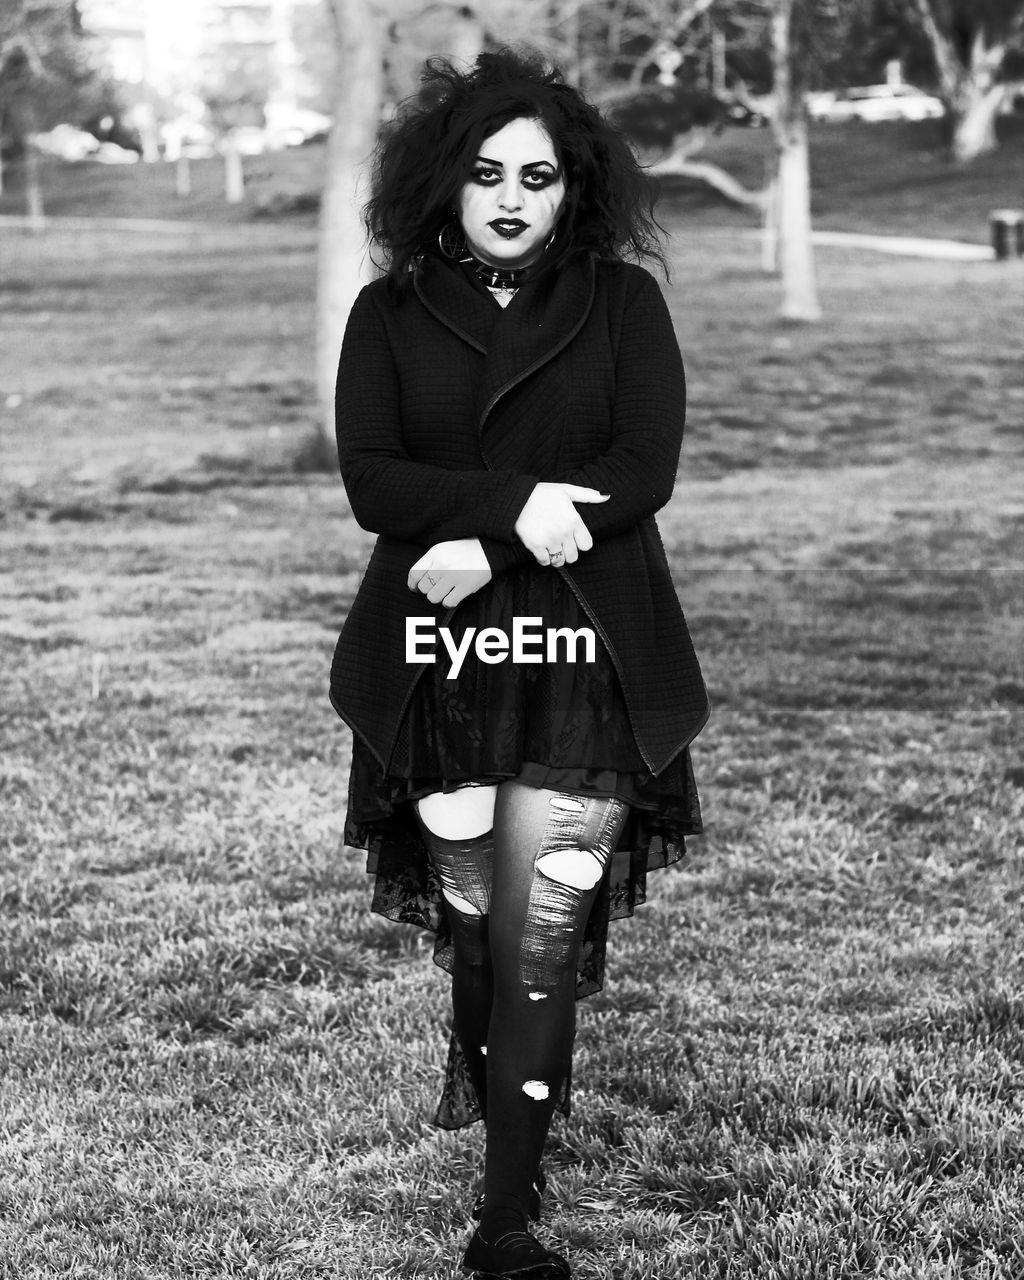 Portrait Of Gothic Woman Walking On Grassy Field